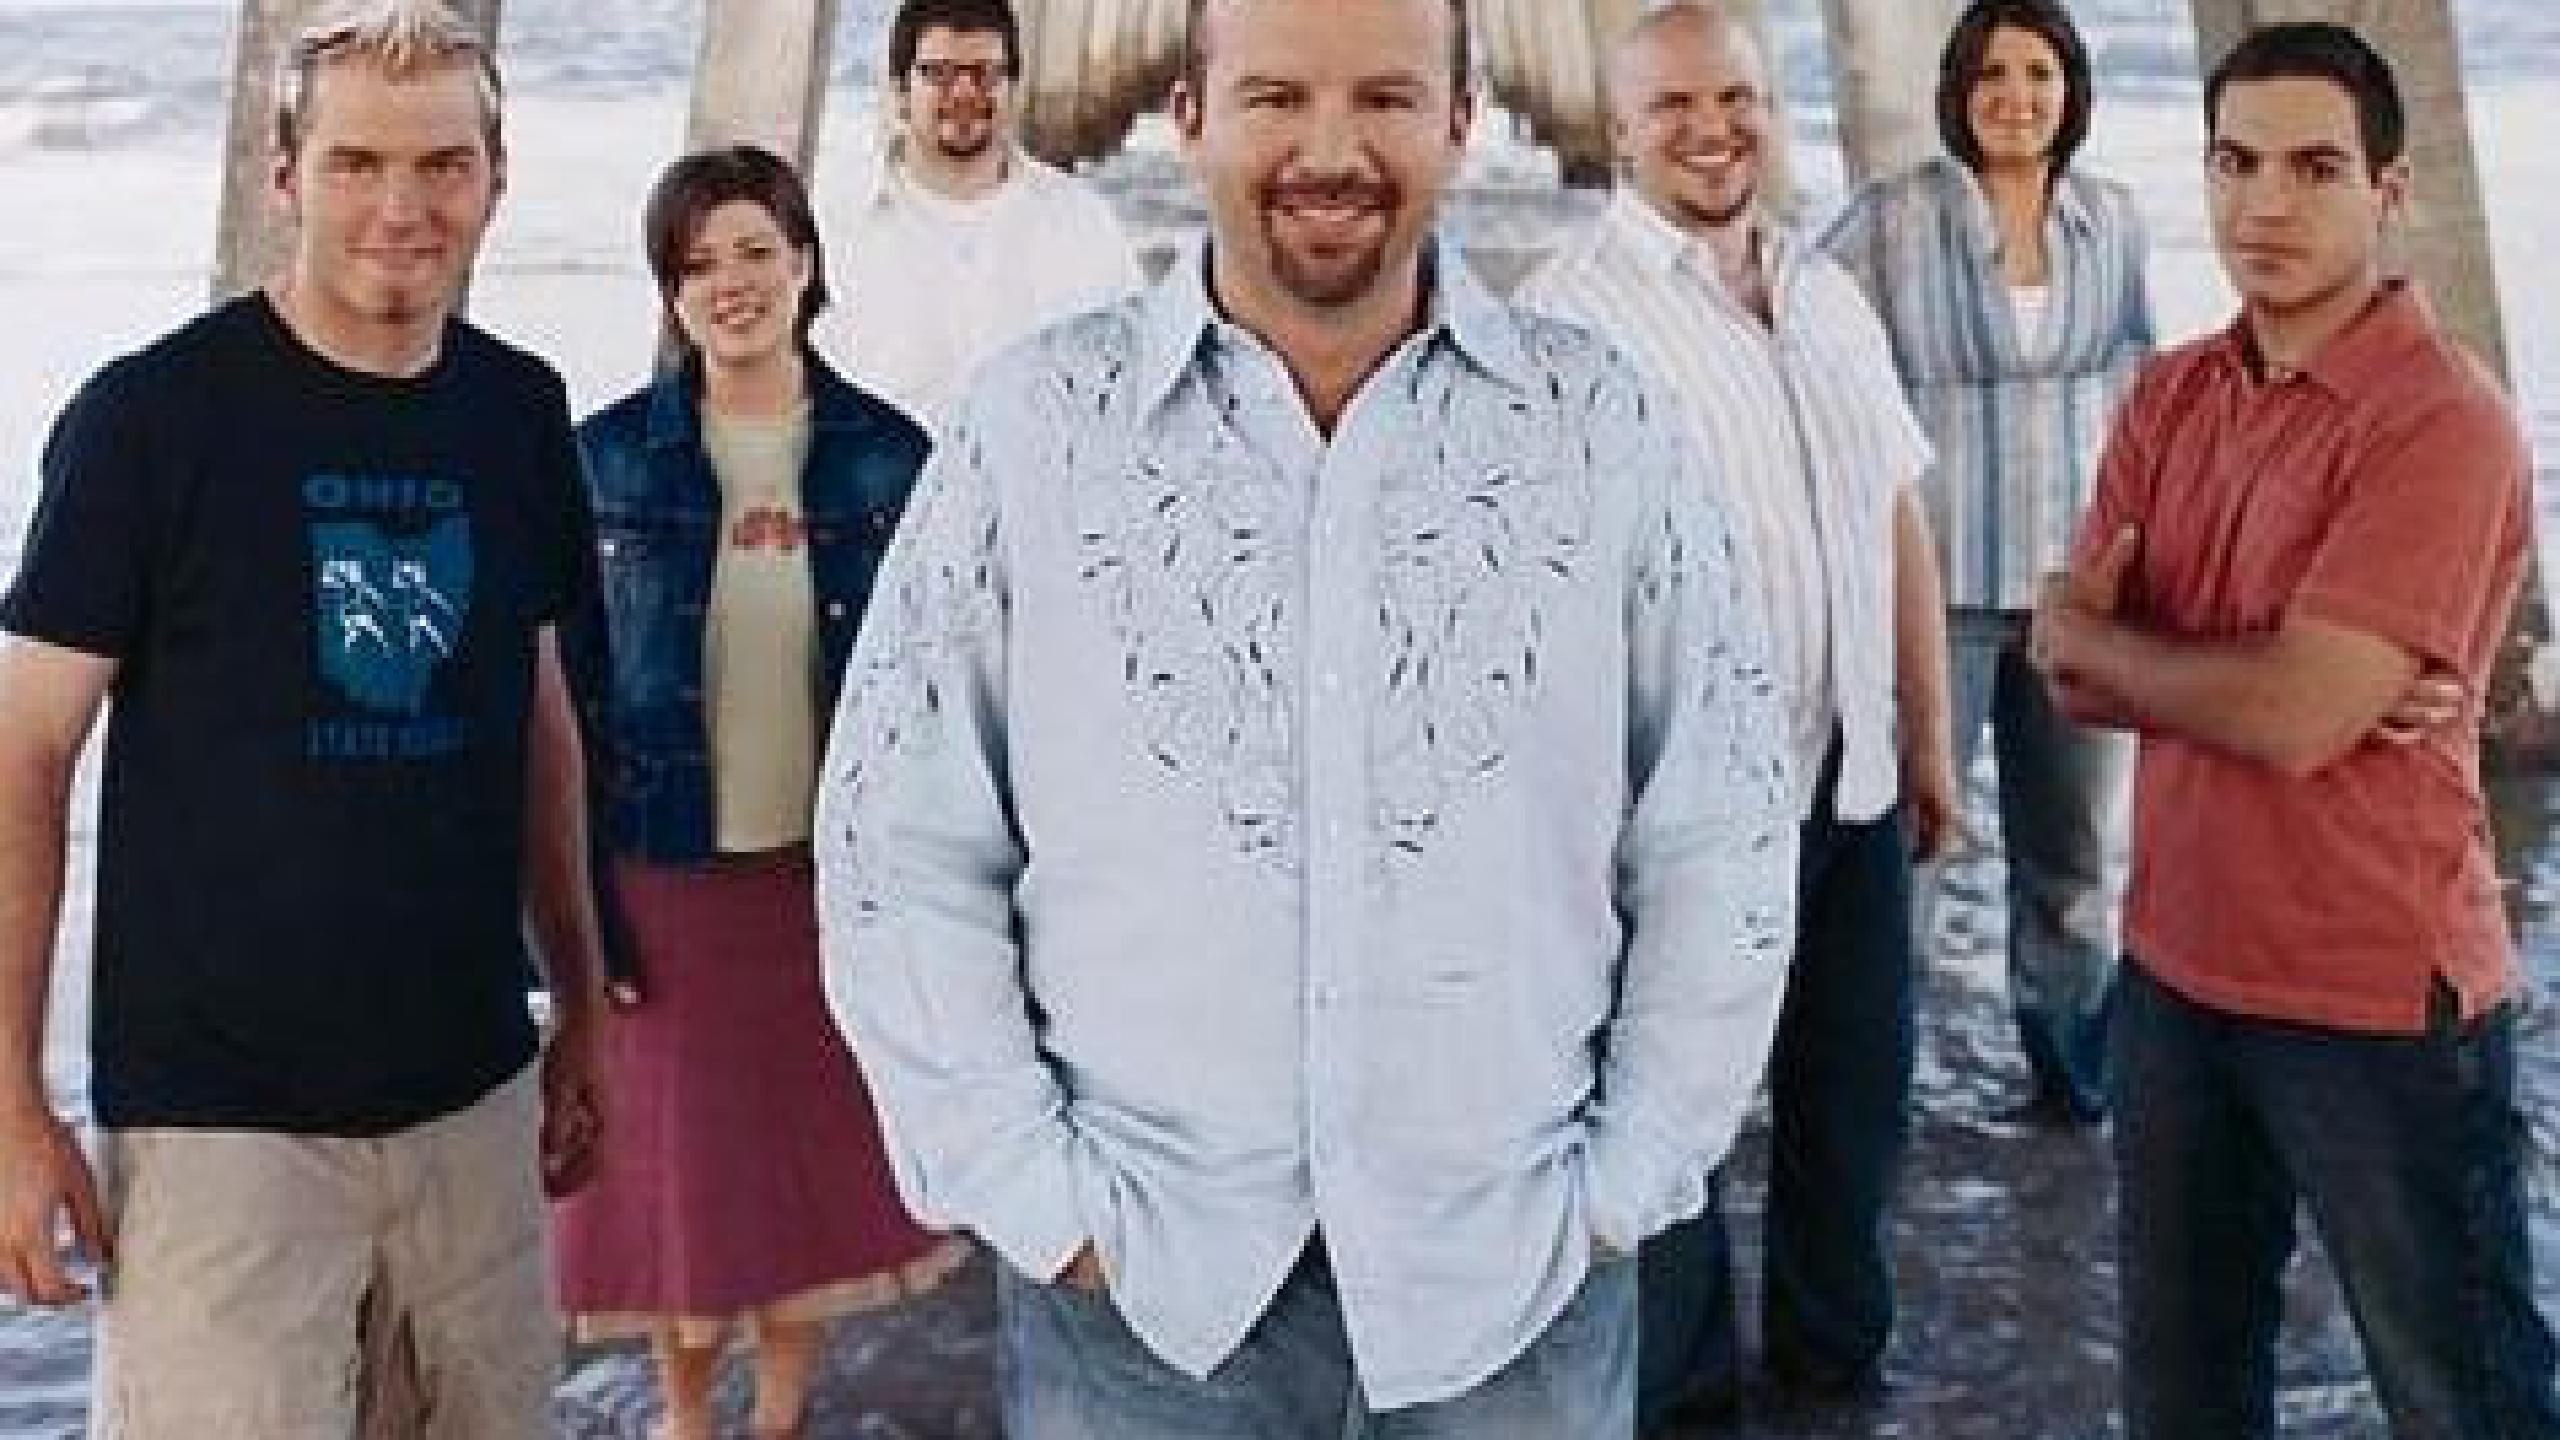 Casting Crowns Tour 2020.Casting Crowns Tour Dates 2019 2020 Casting Crowns Tickets And Concerts Wegow